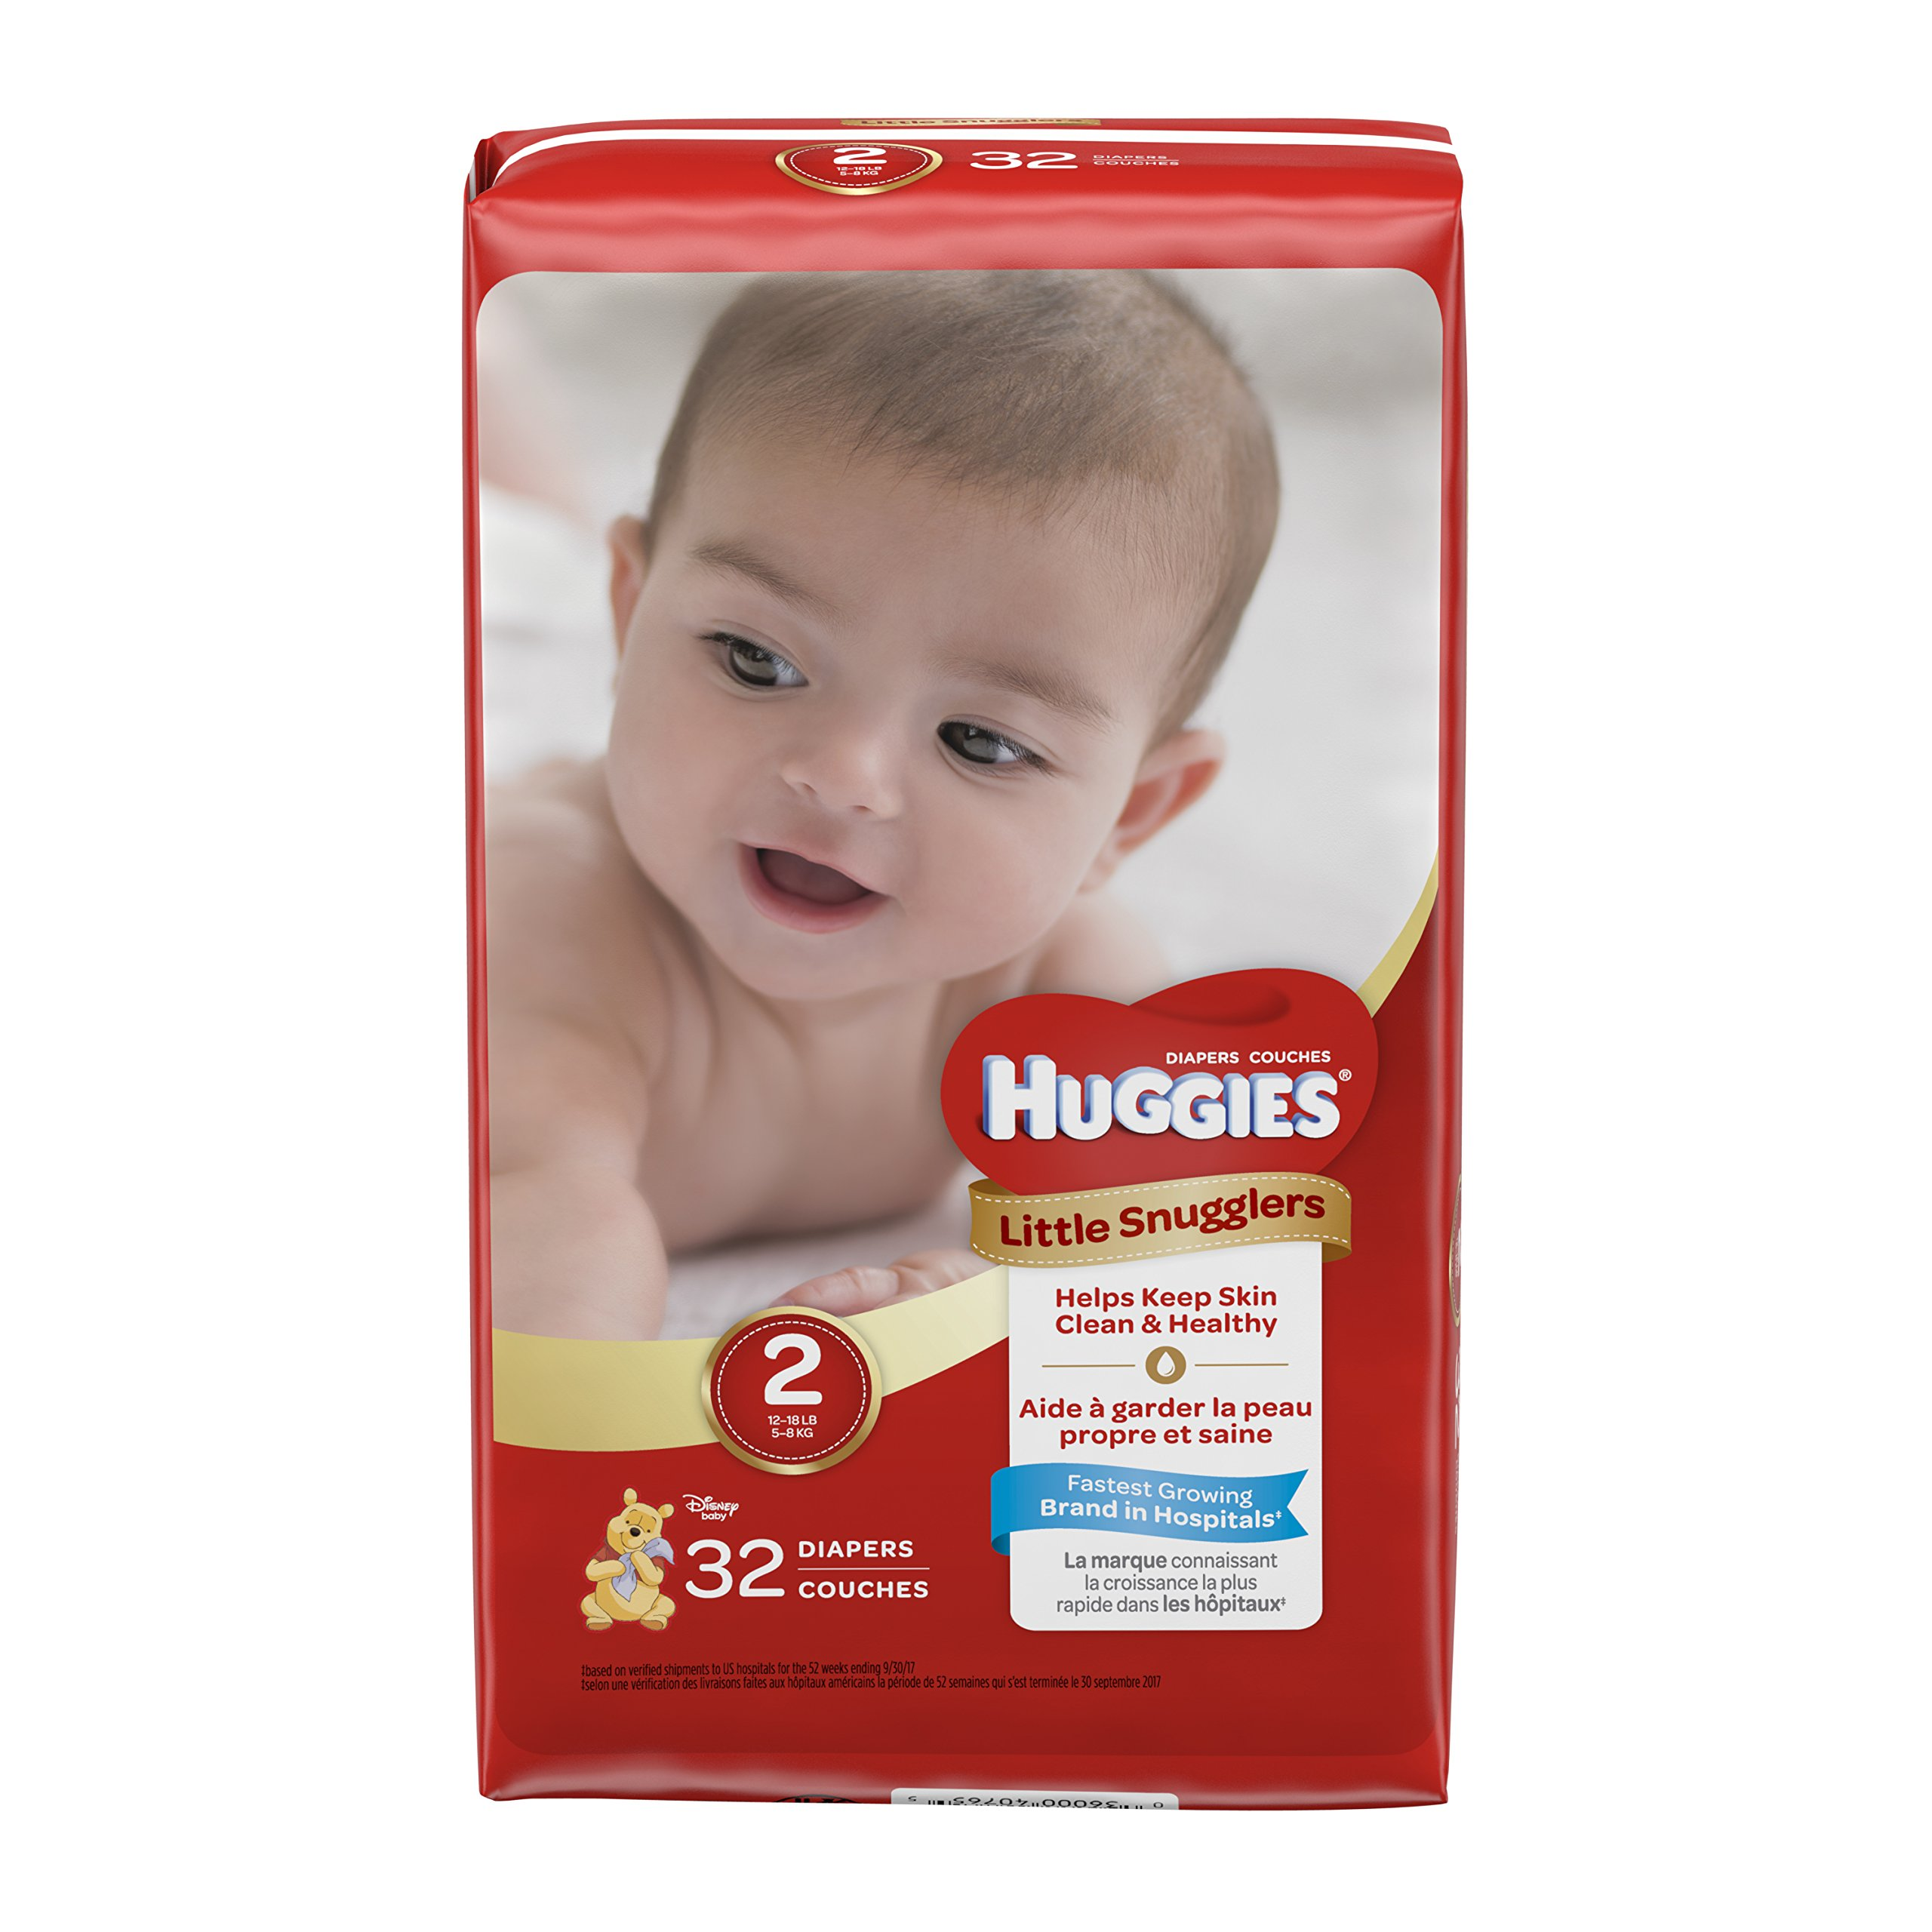 Huggies Little Snugglers Baby Diapers, Size 2, 32 Count, JUMBO PACK  (Packaging